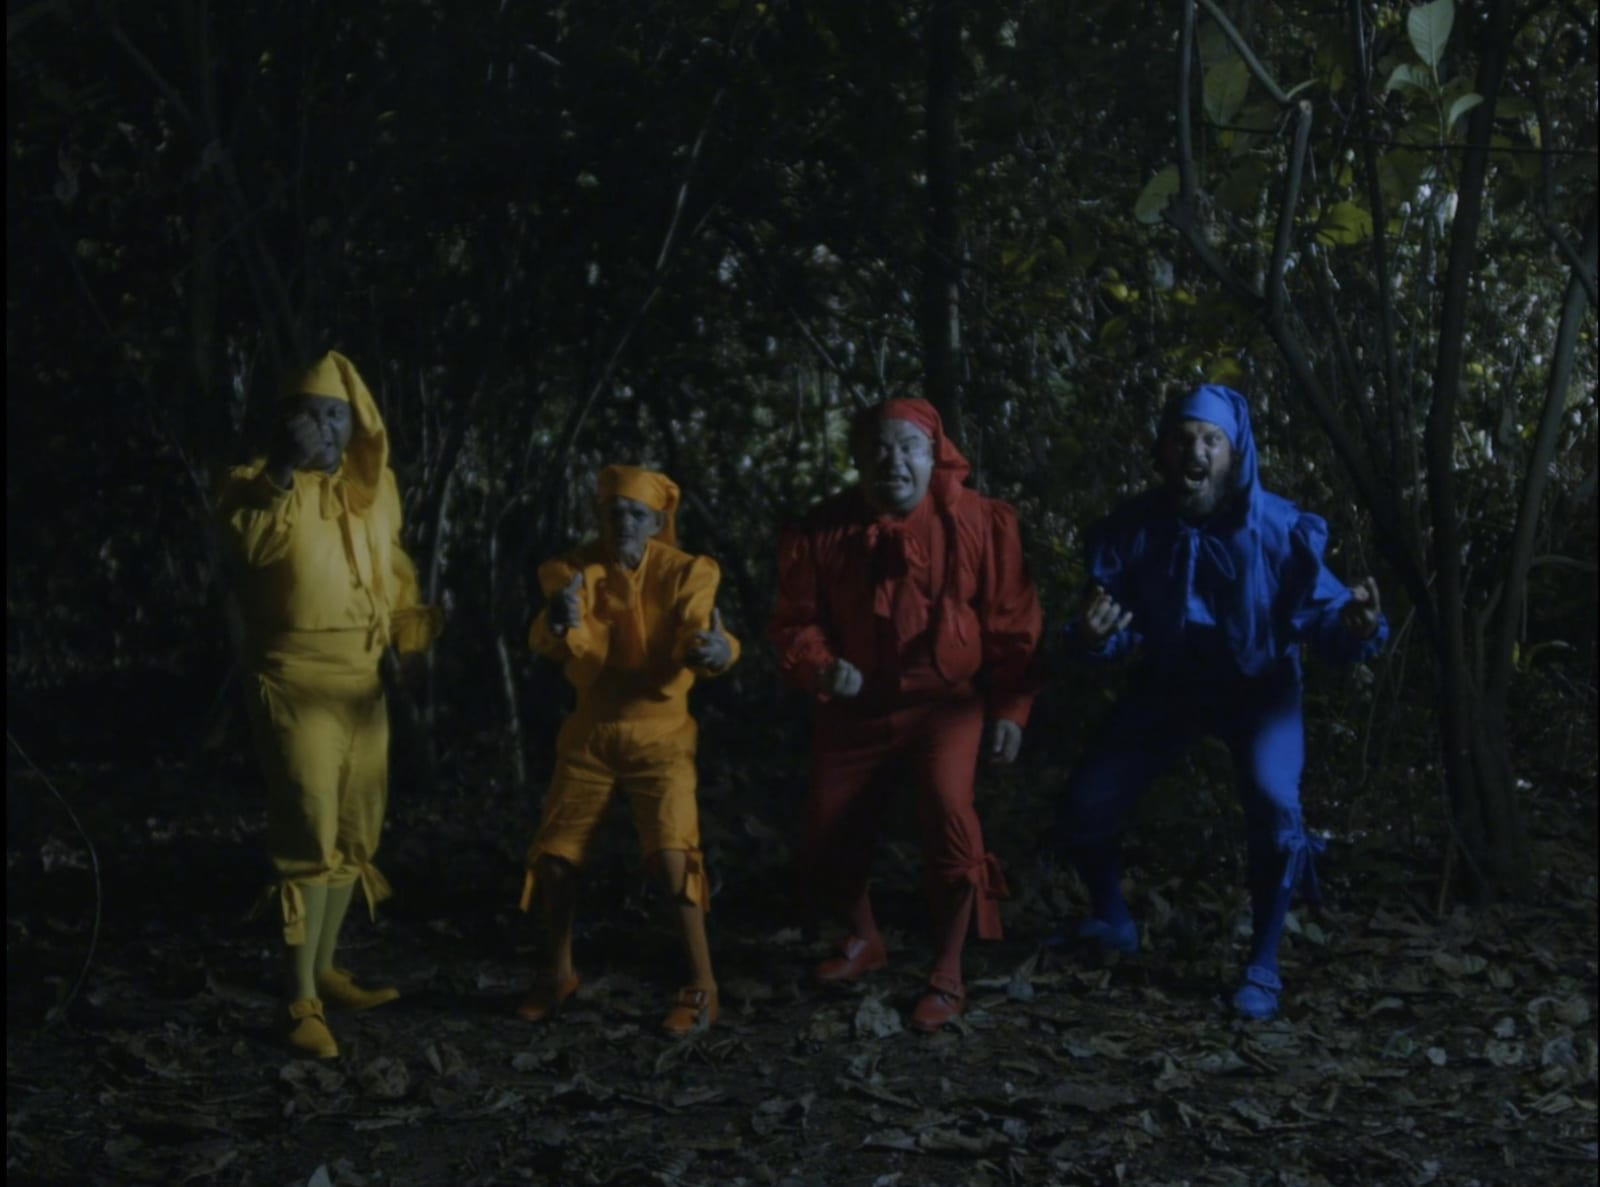 Scene 3 : A cross-cultural encounter with the orang minyak (Malay monsters)